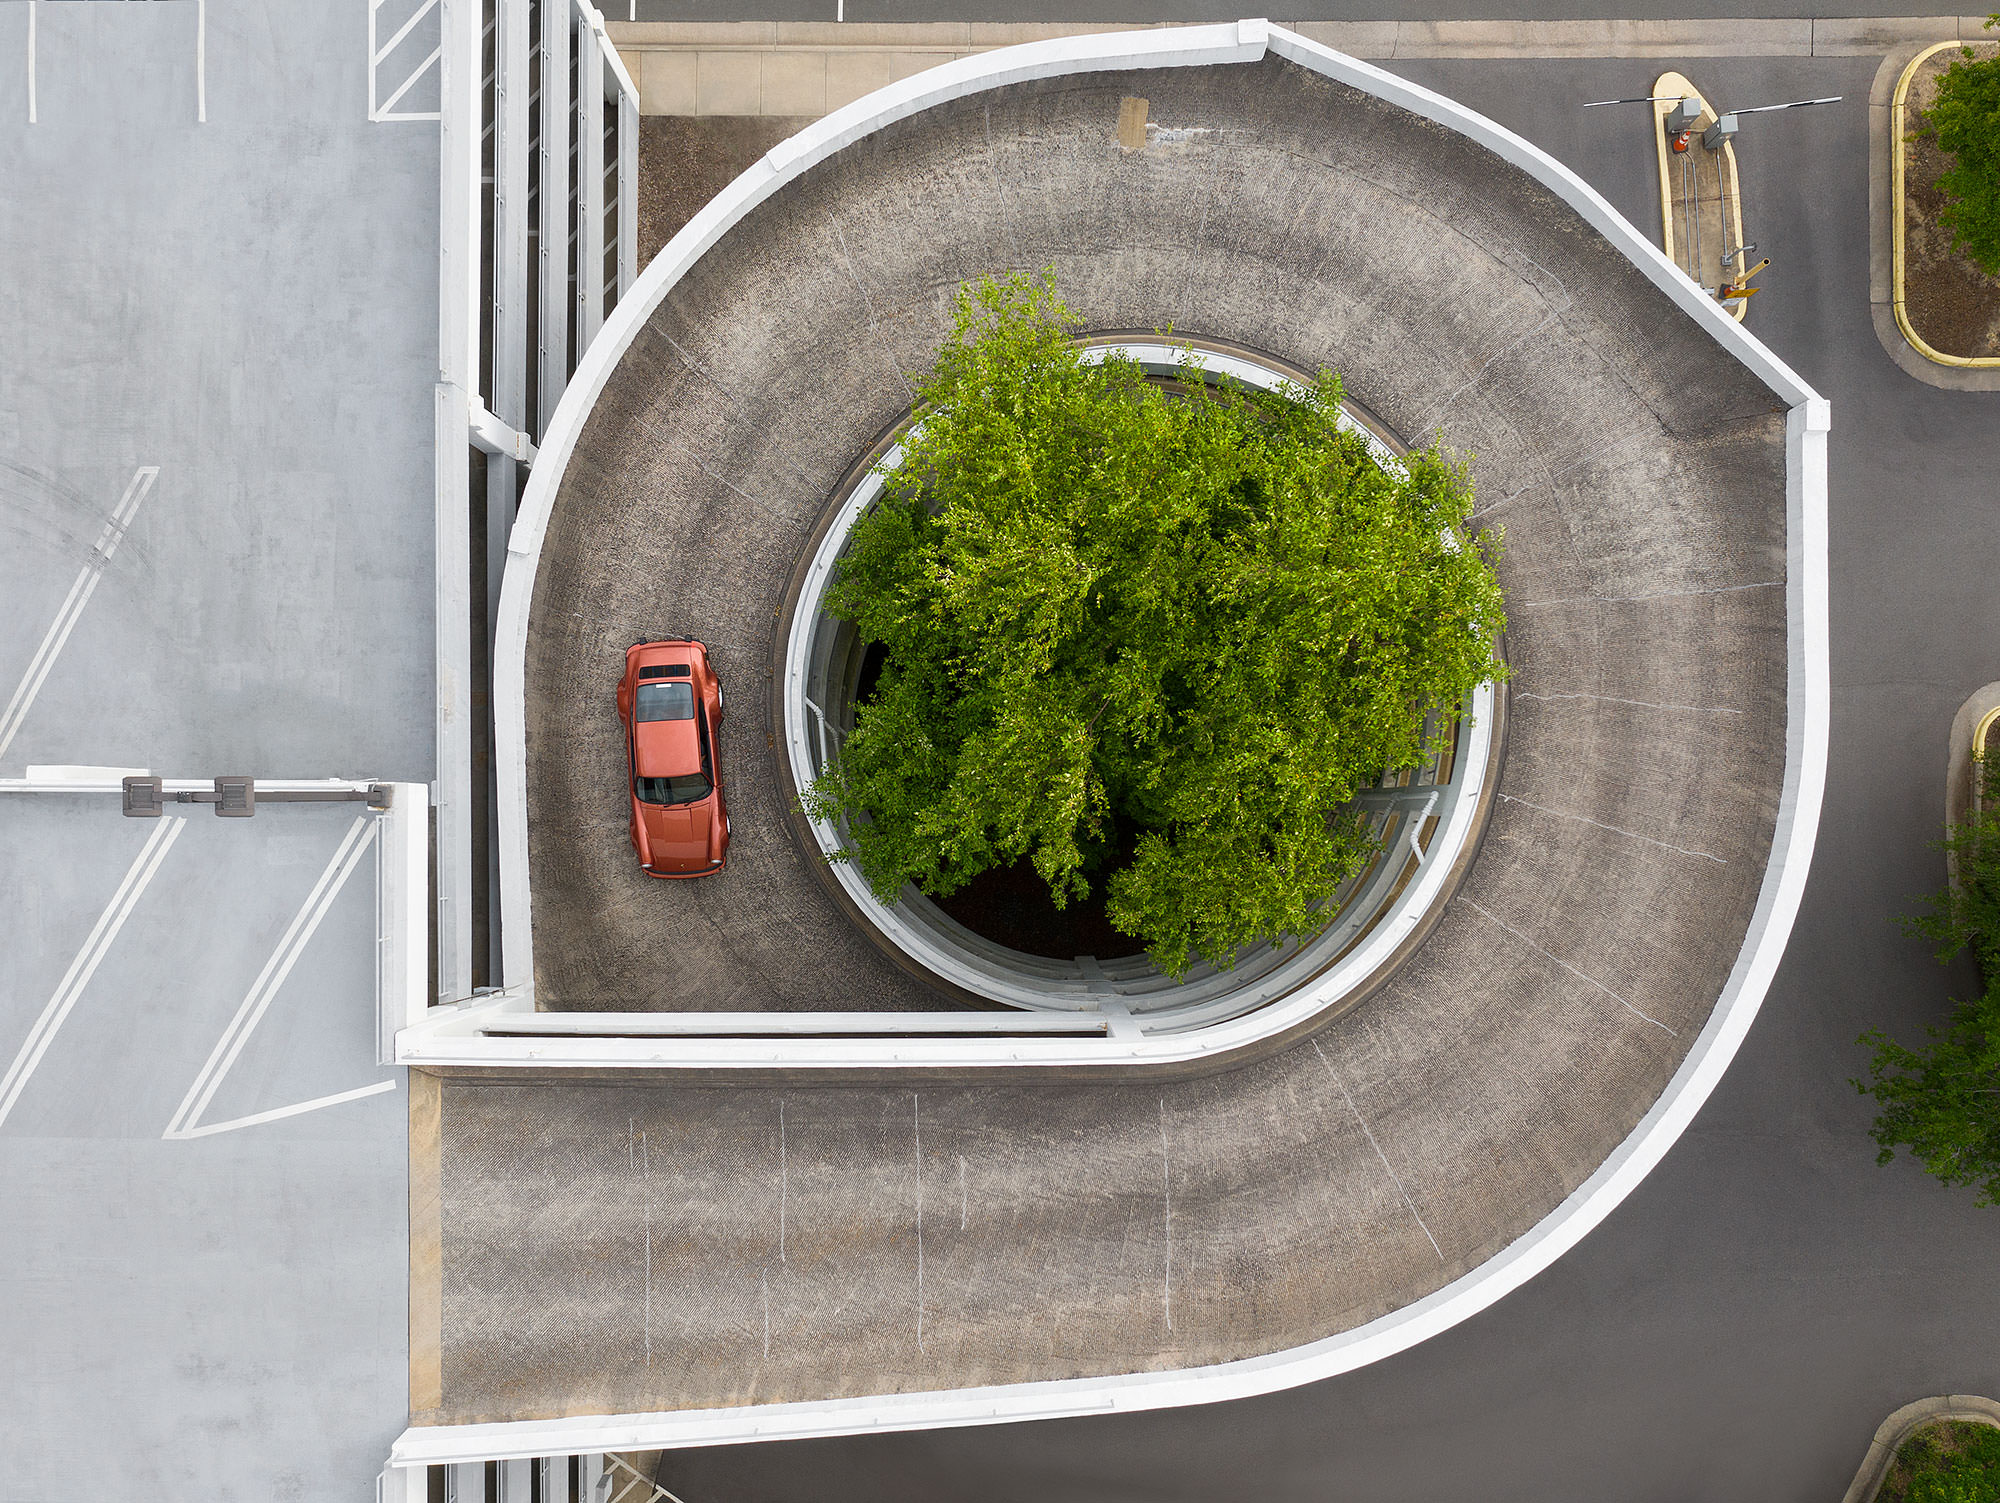 1975 Porsche Tail-Less 911 Turbo aerial photography